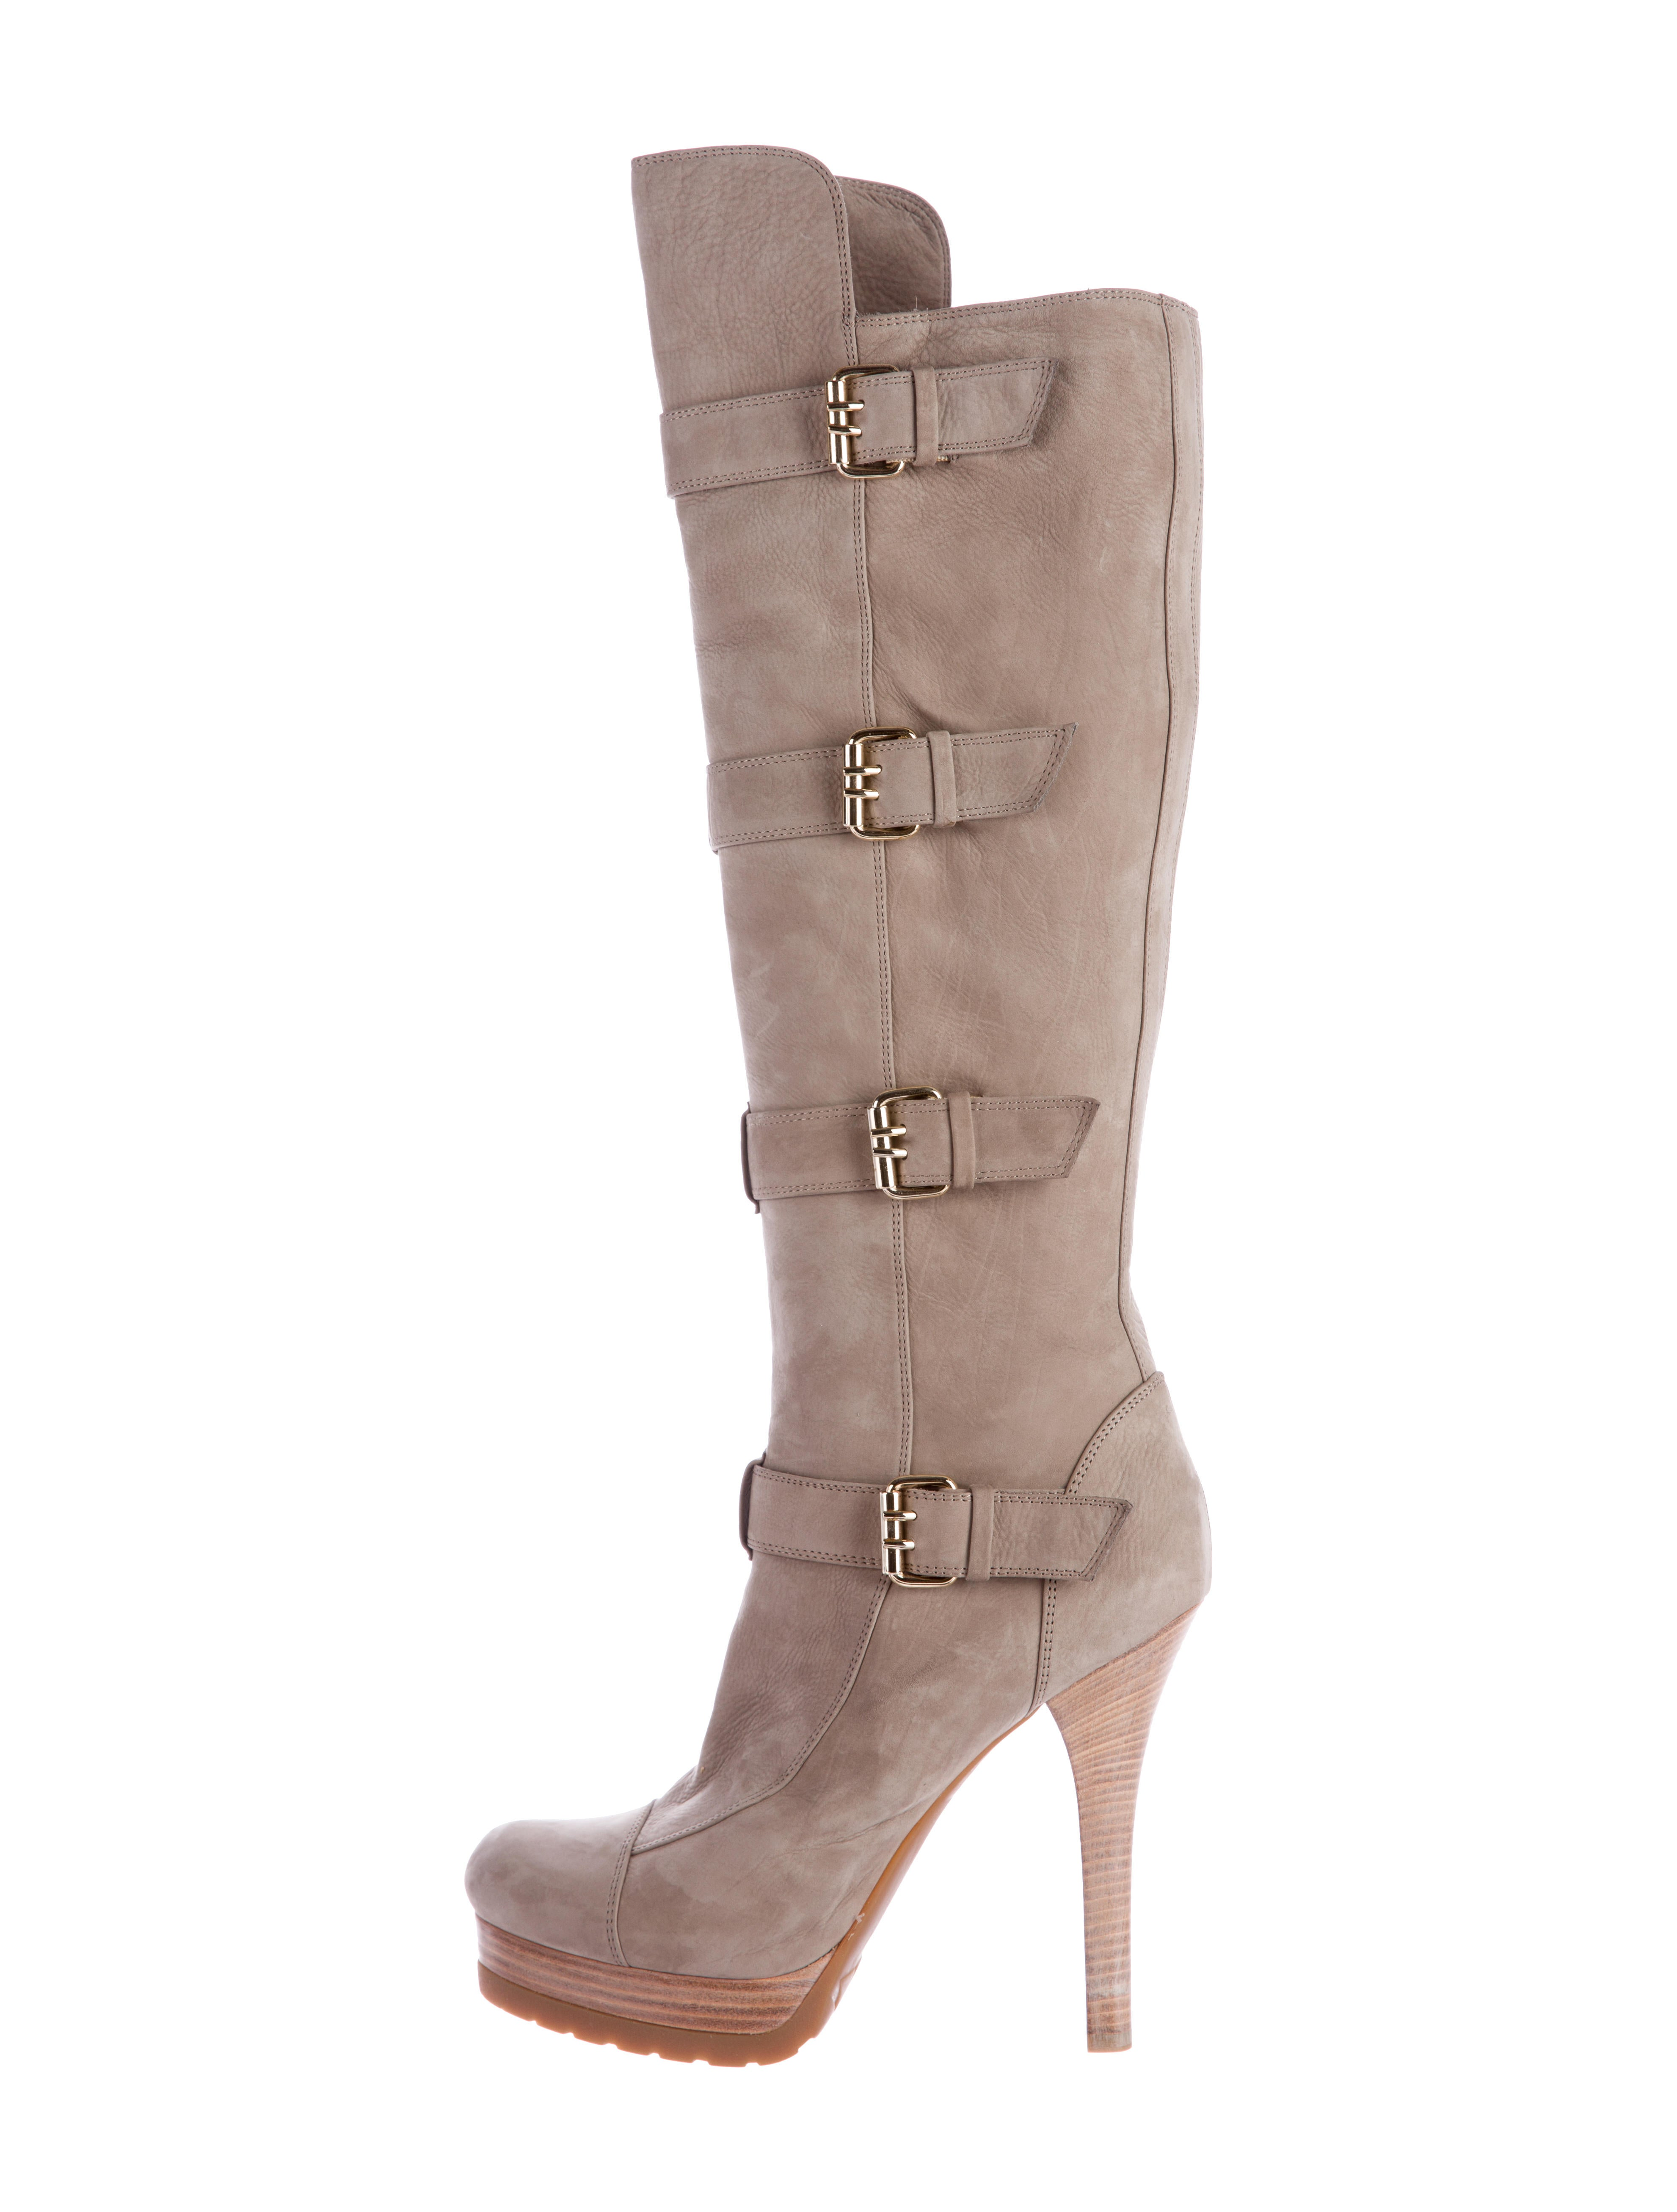 fendi buckle accented knee high boots shoes fen46493